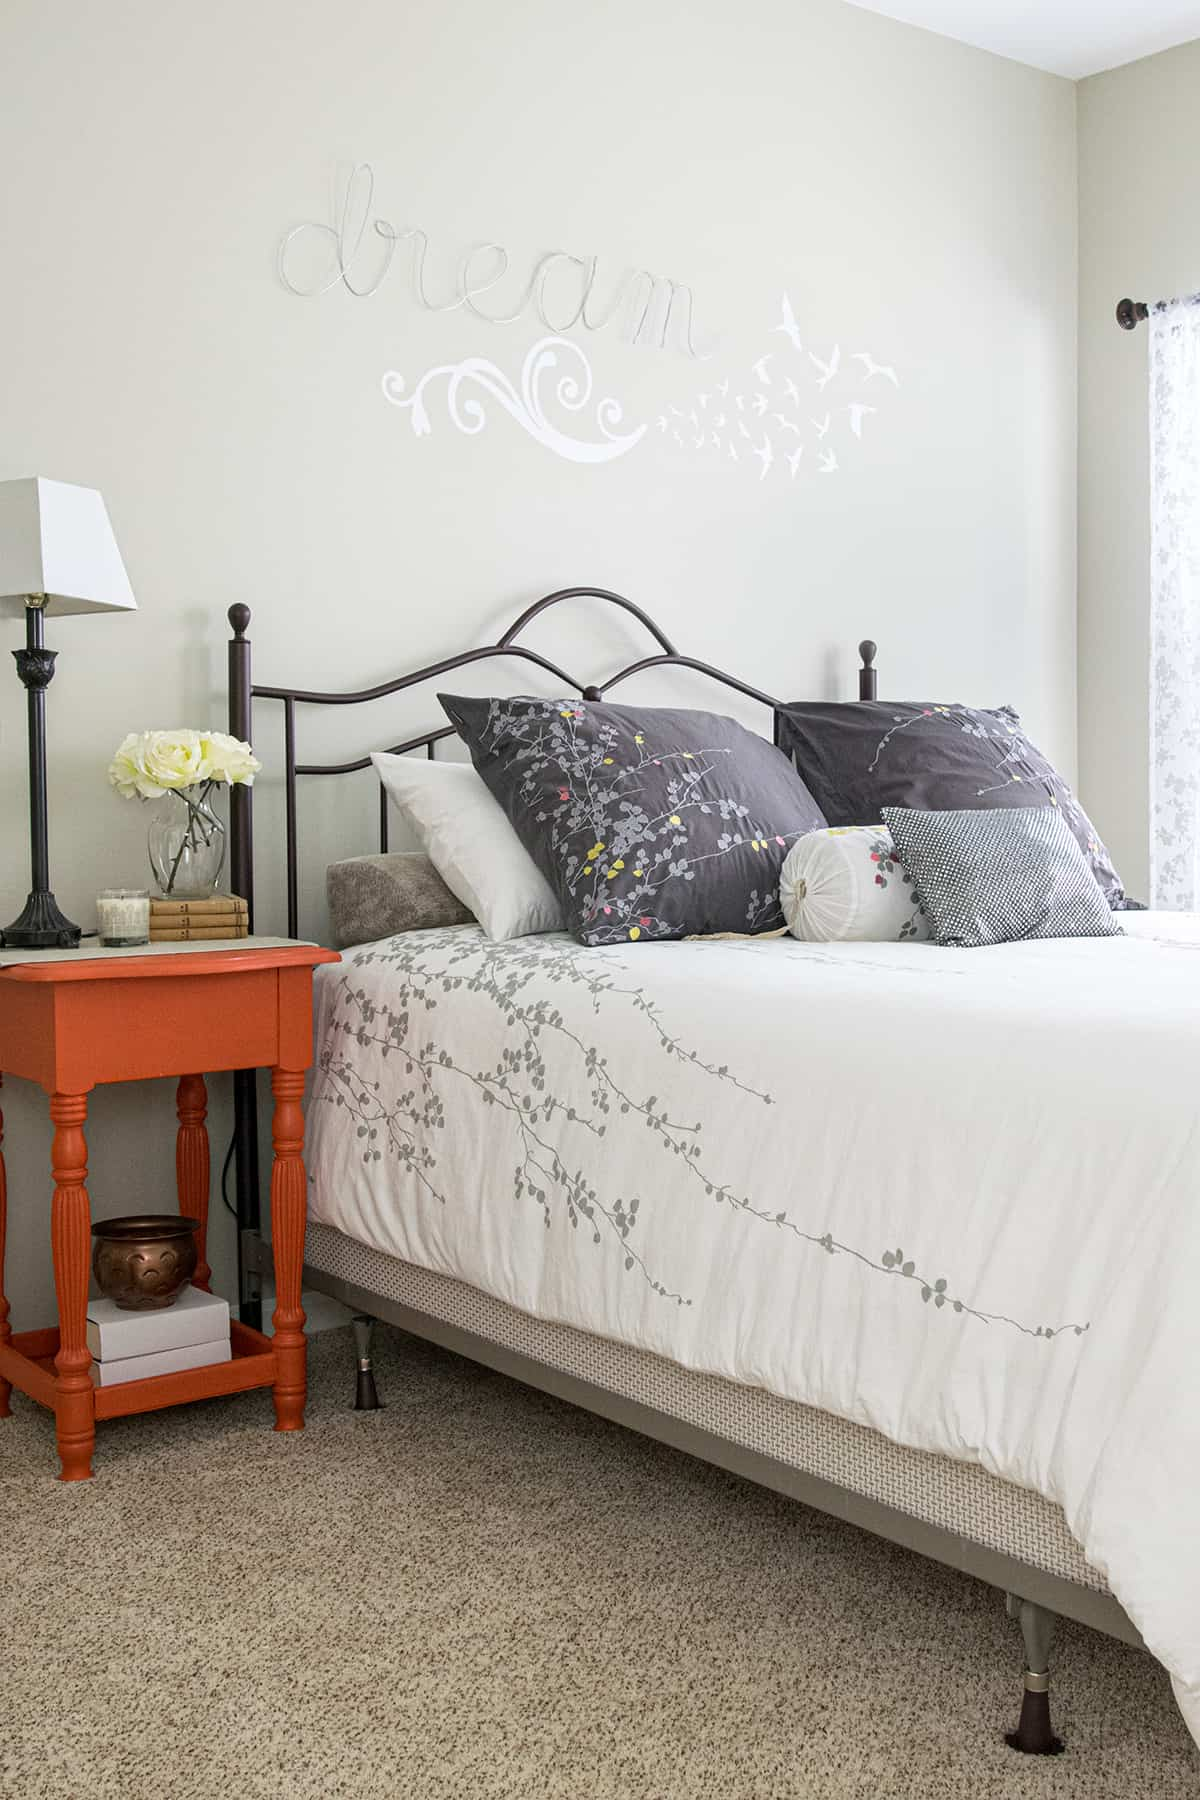 Neutral bedroom with white floral comforter, orange side table, and art over the bed.